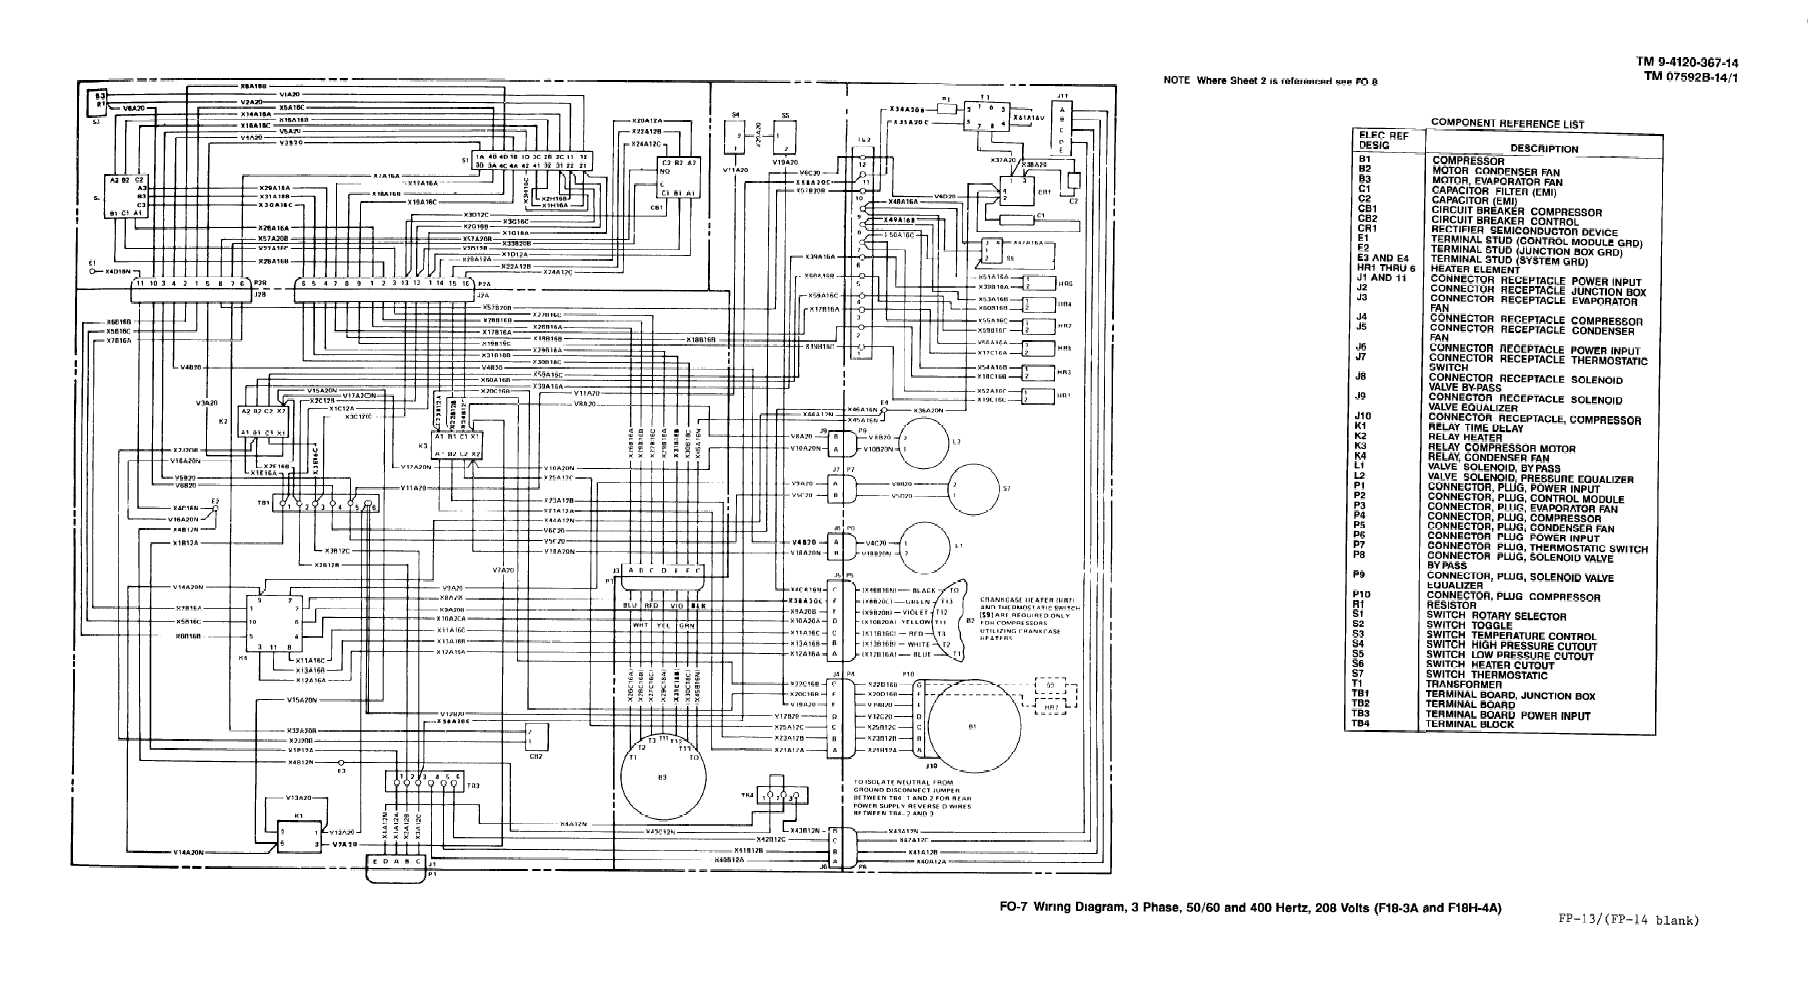 Fo 7 Wiring Diagram 3 Phase 400 Hertz 208 Volts Model F18h 3a And F18h 4a